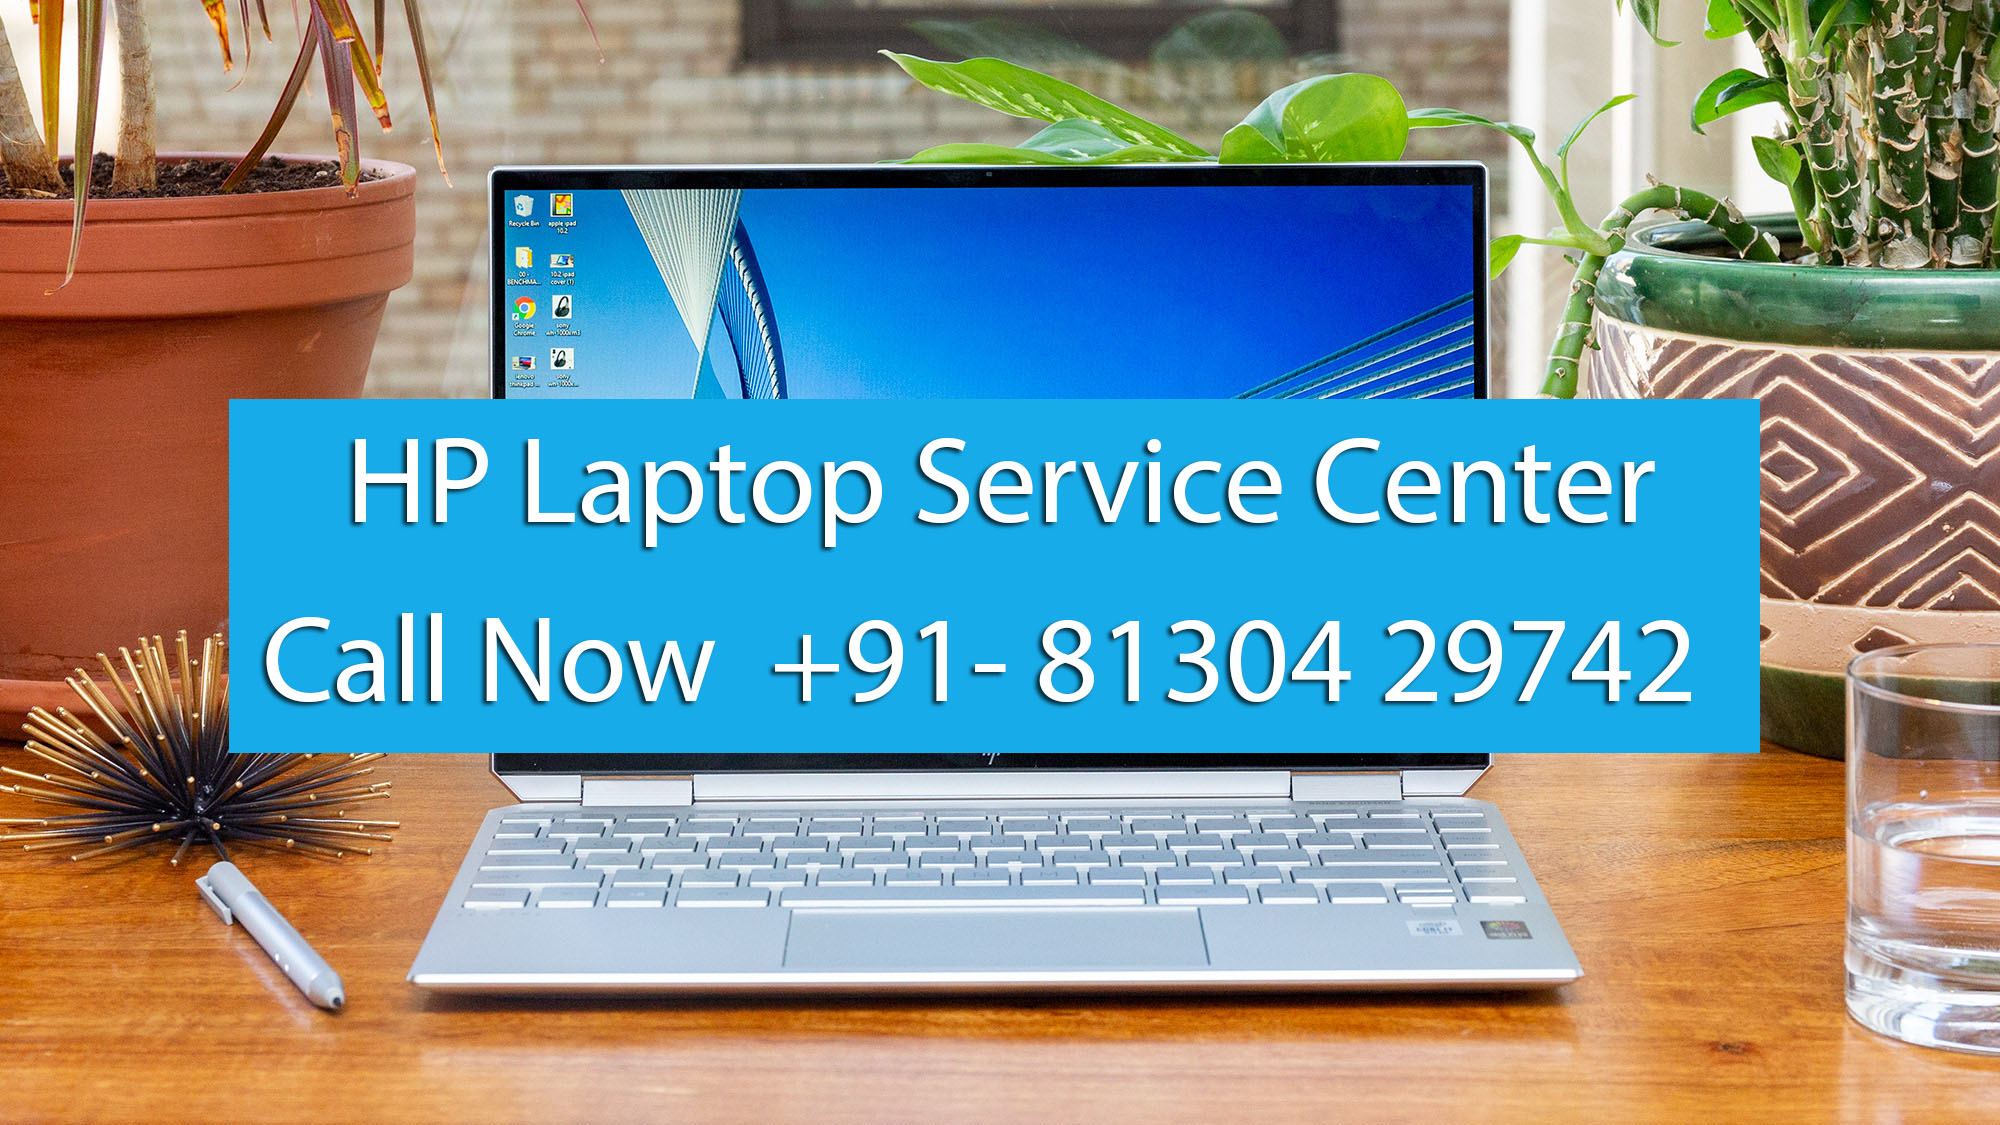 HP Service Center in Lucknow in Lucknow